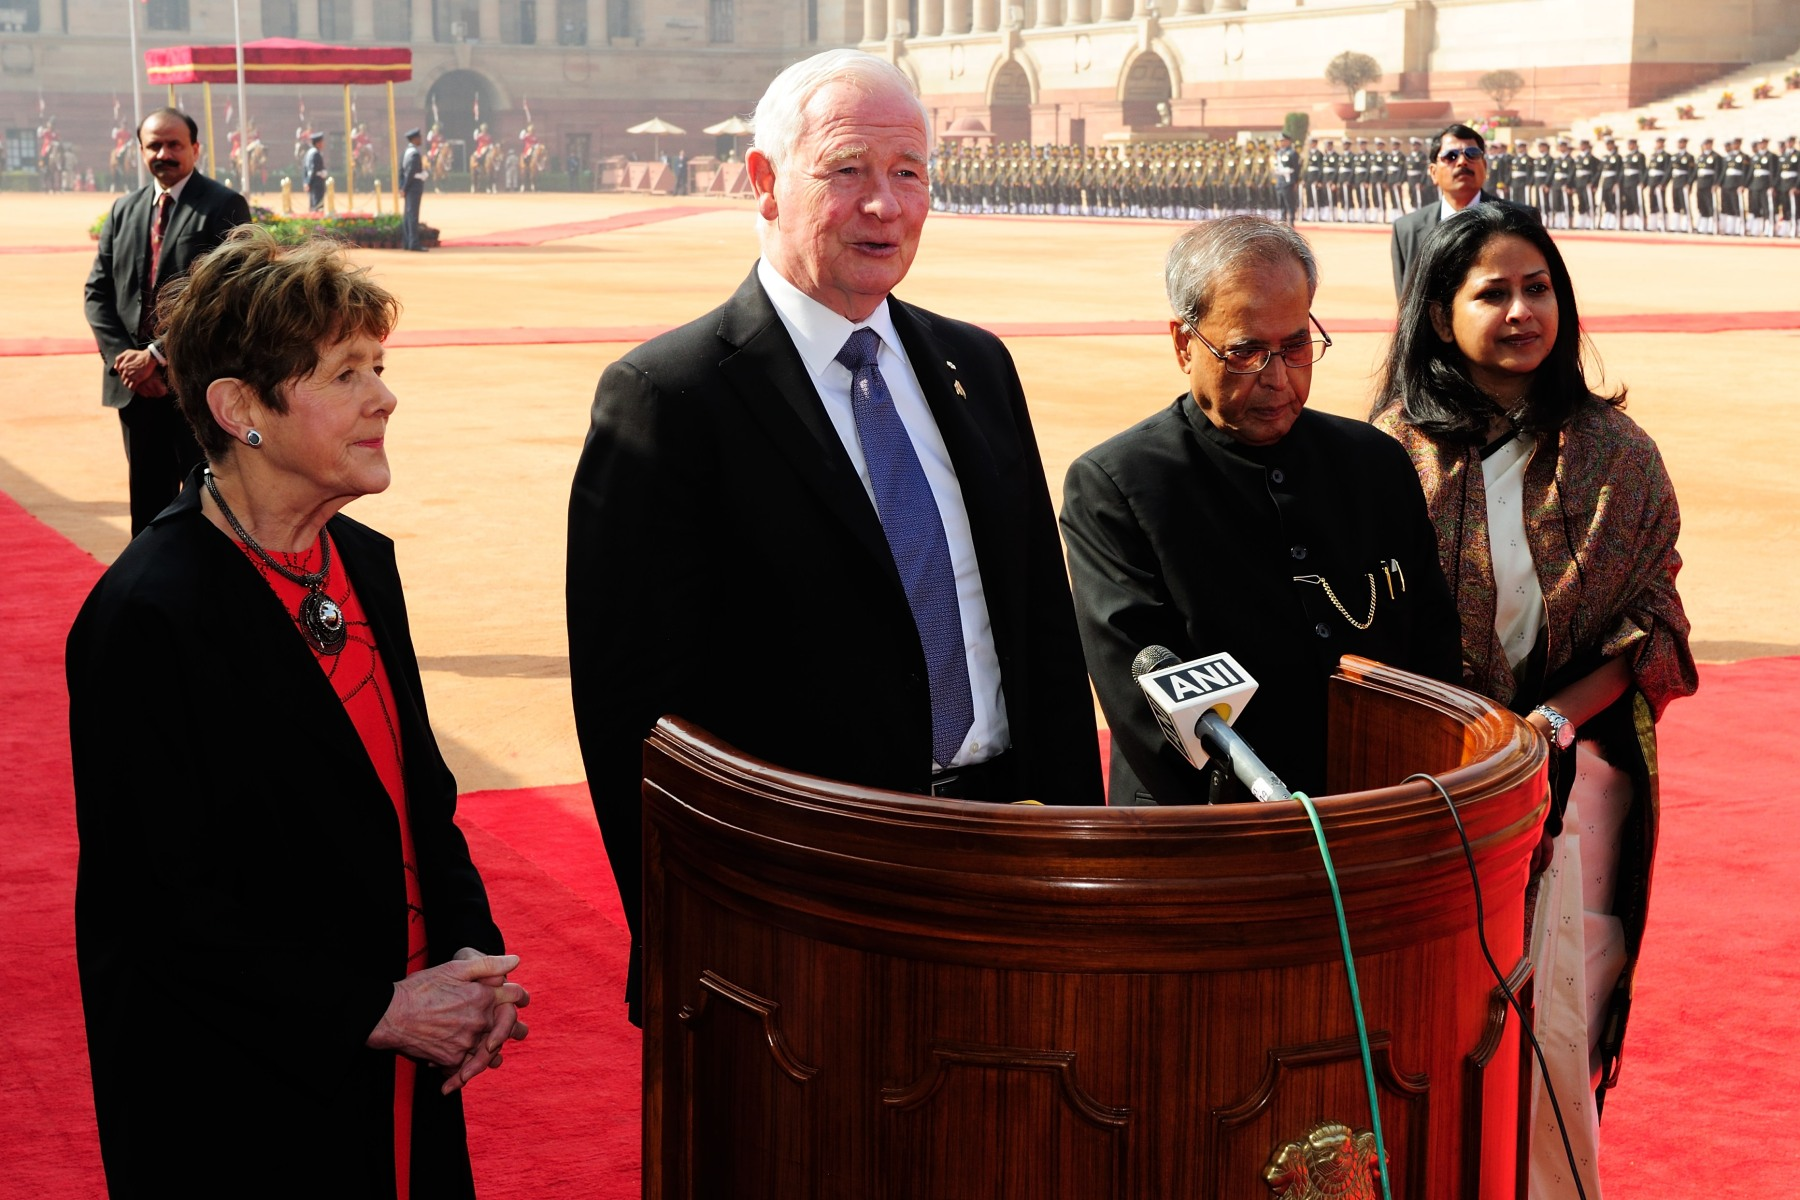 At the end of the ceremony, the Governor General answered a question from the media.